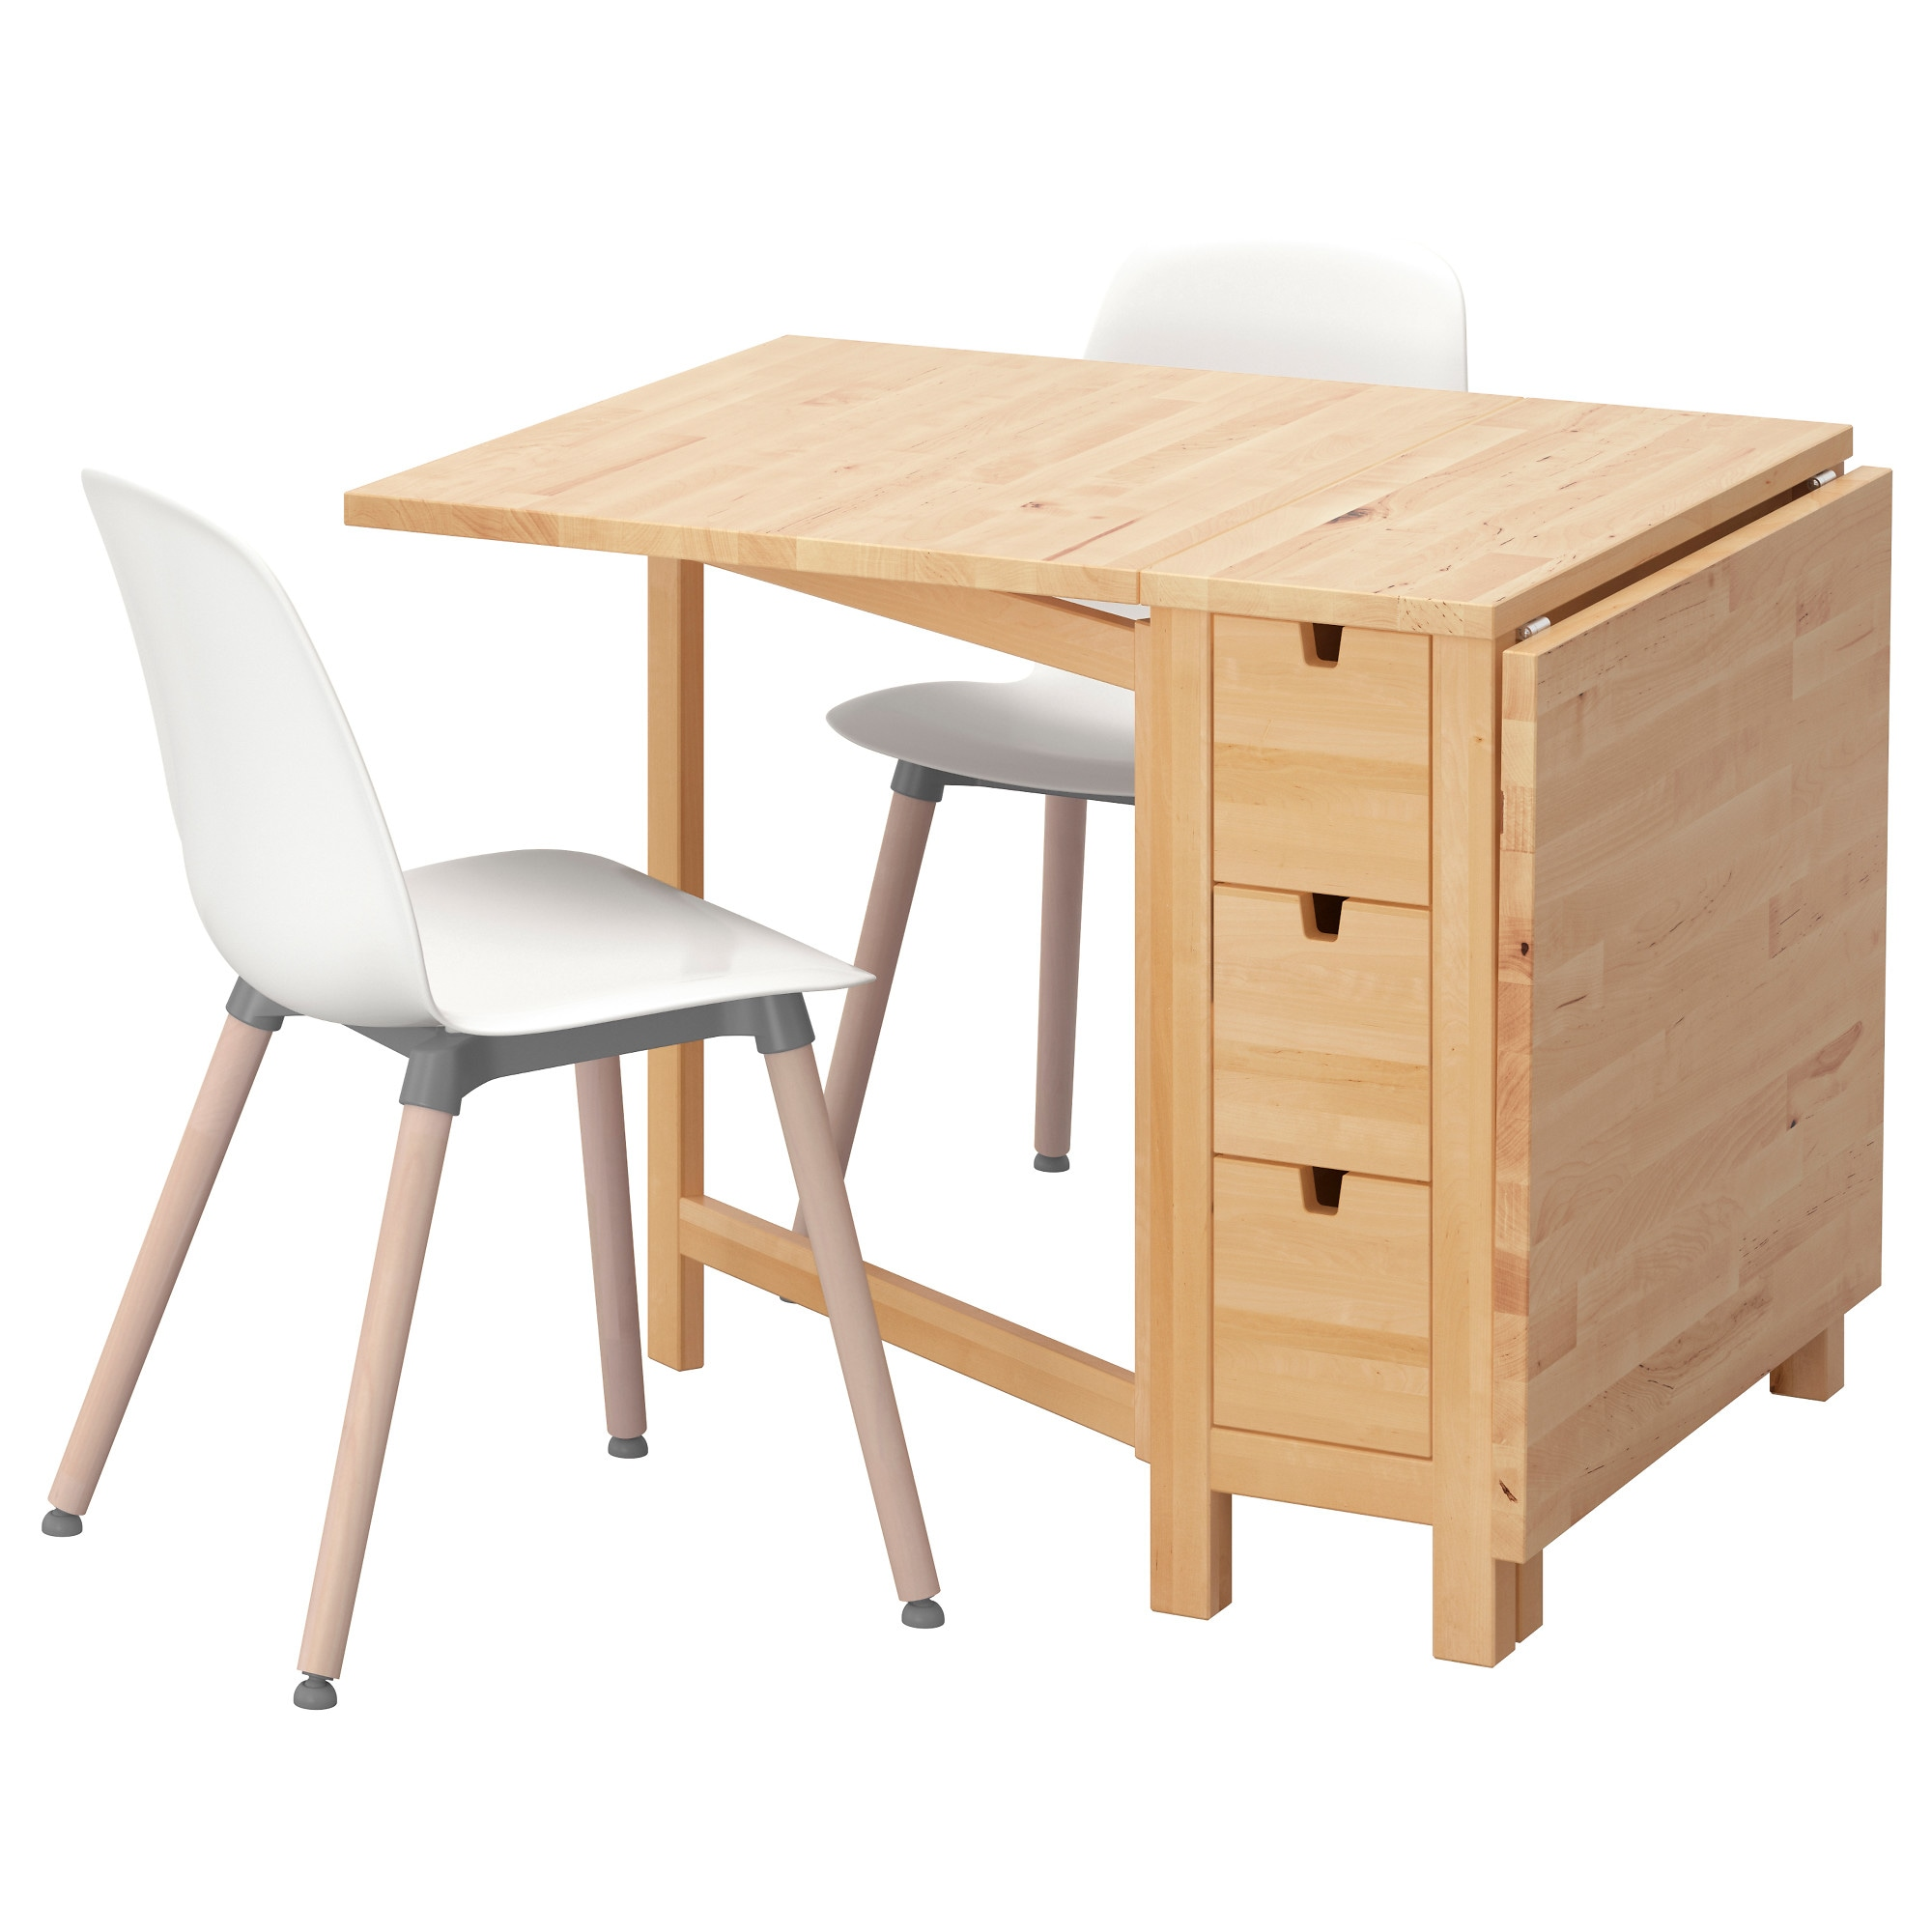 Norden Leifarne Table And 2 Chairs Ikea